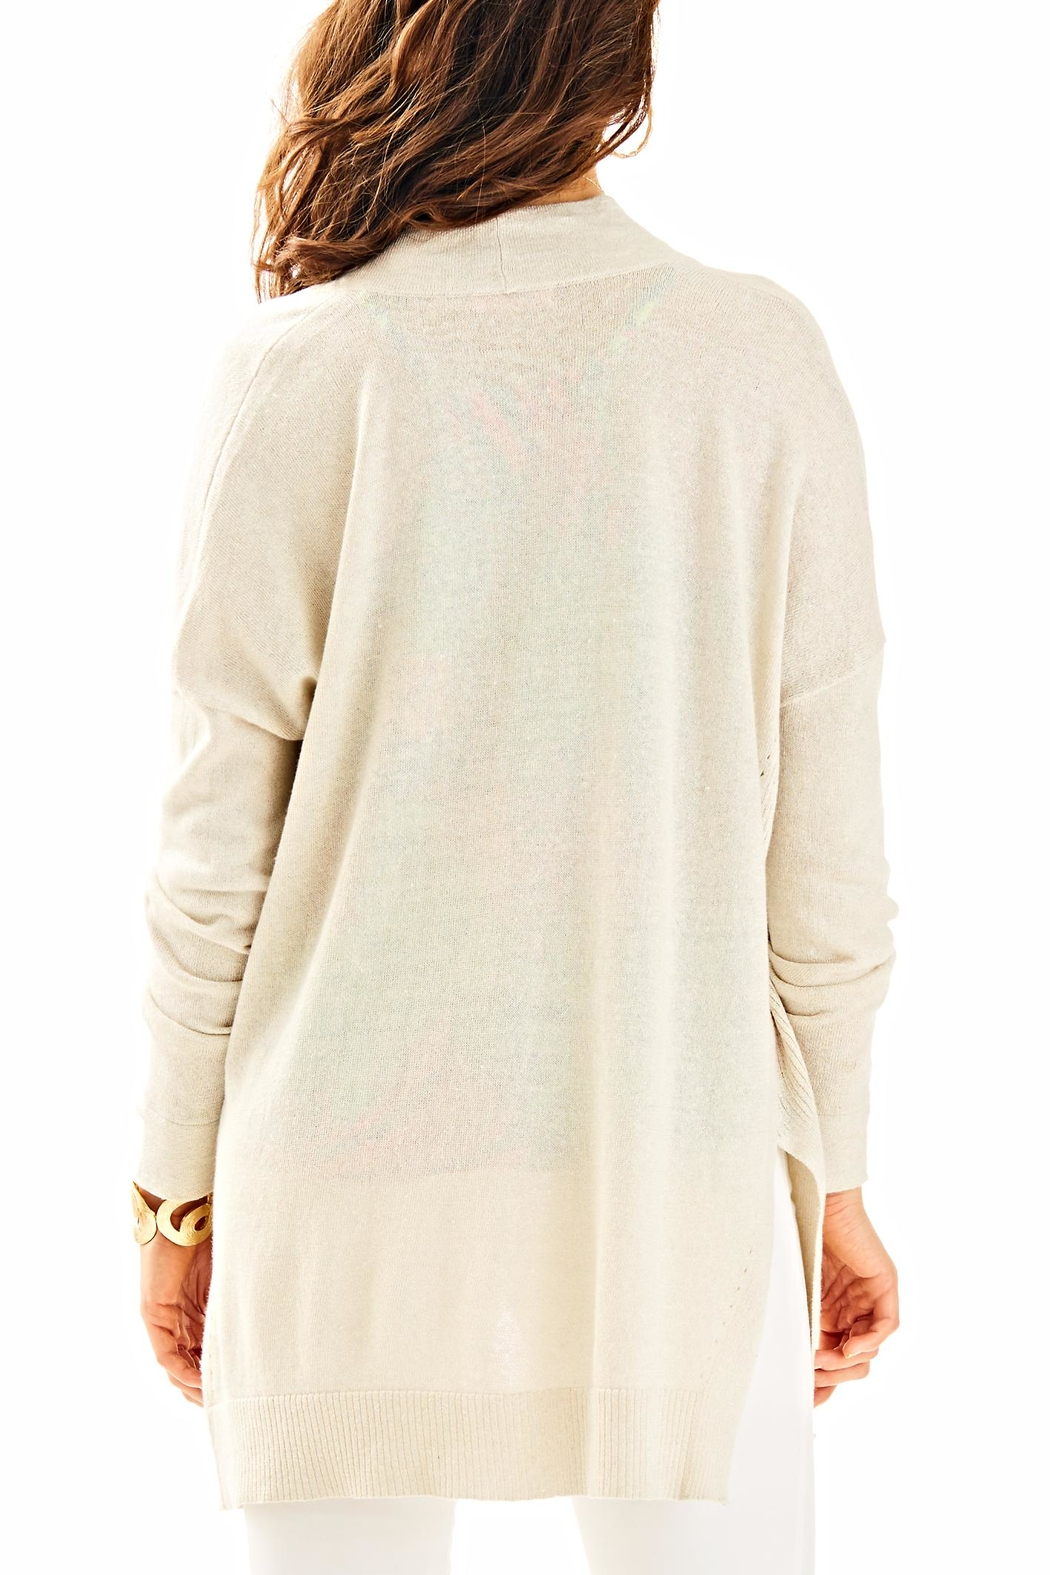 Lilly Pulitzer Melly Cardigan - Front Full Image